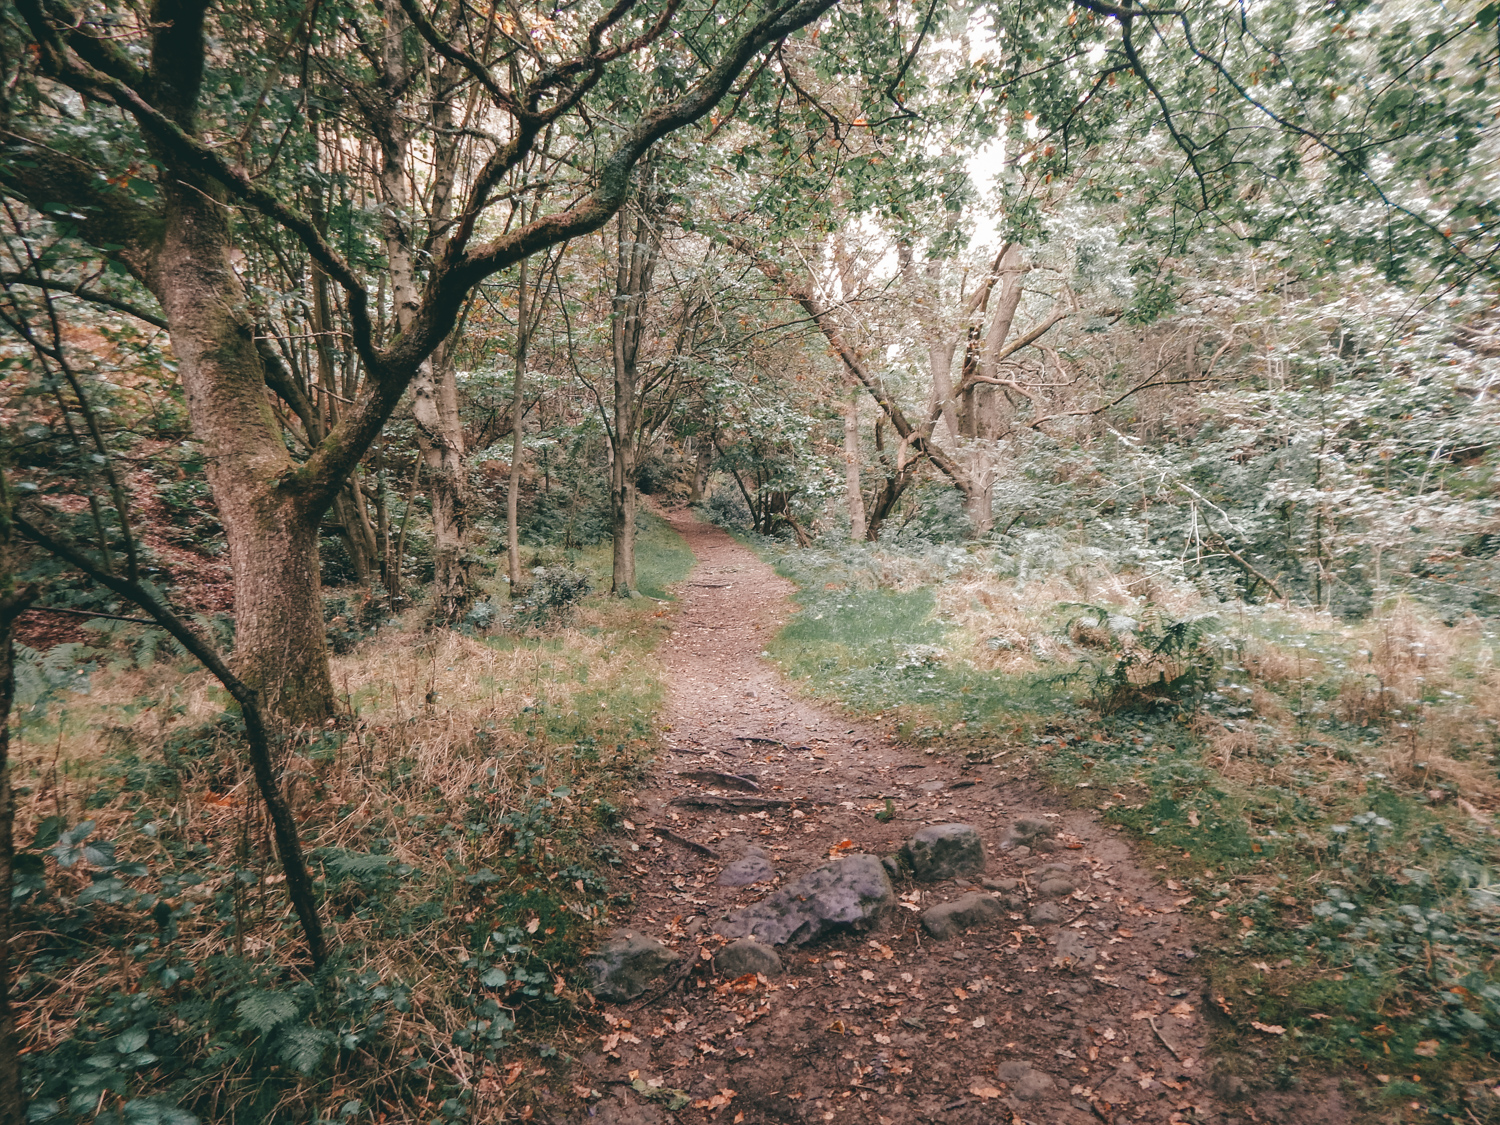 dalby forest walk in yorkshire